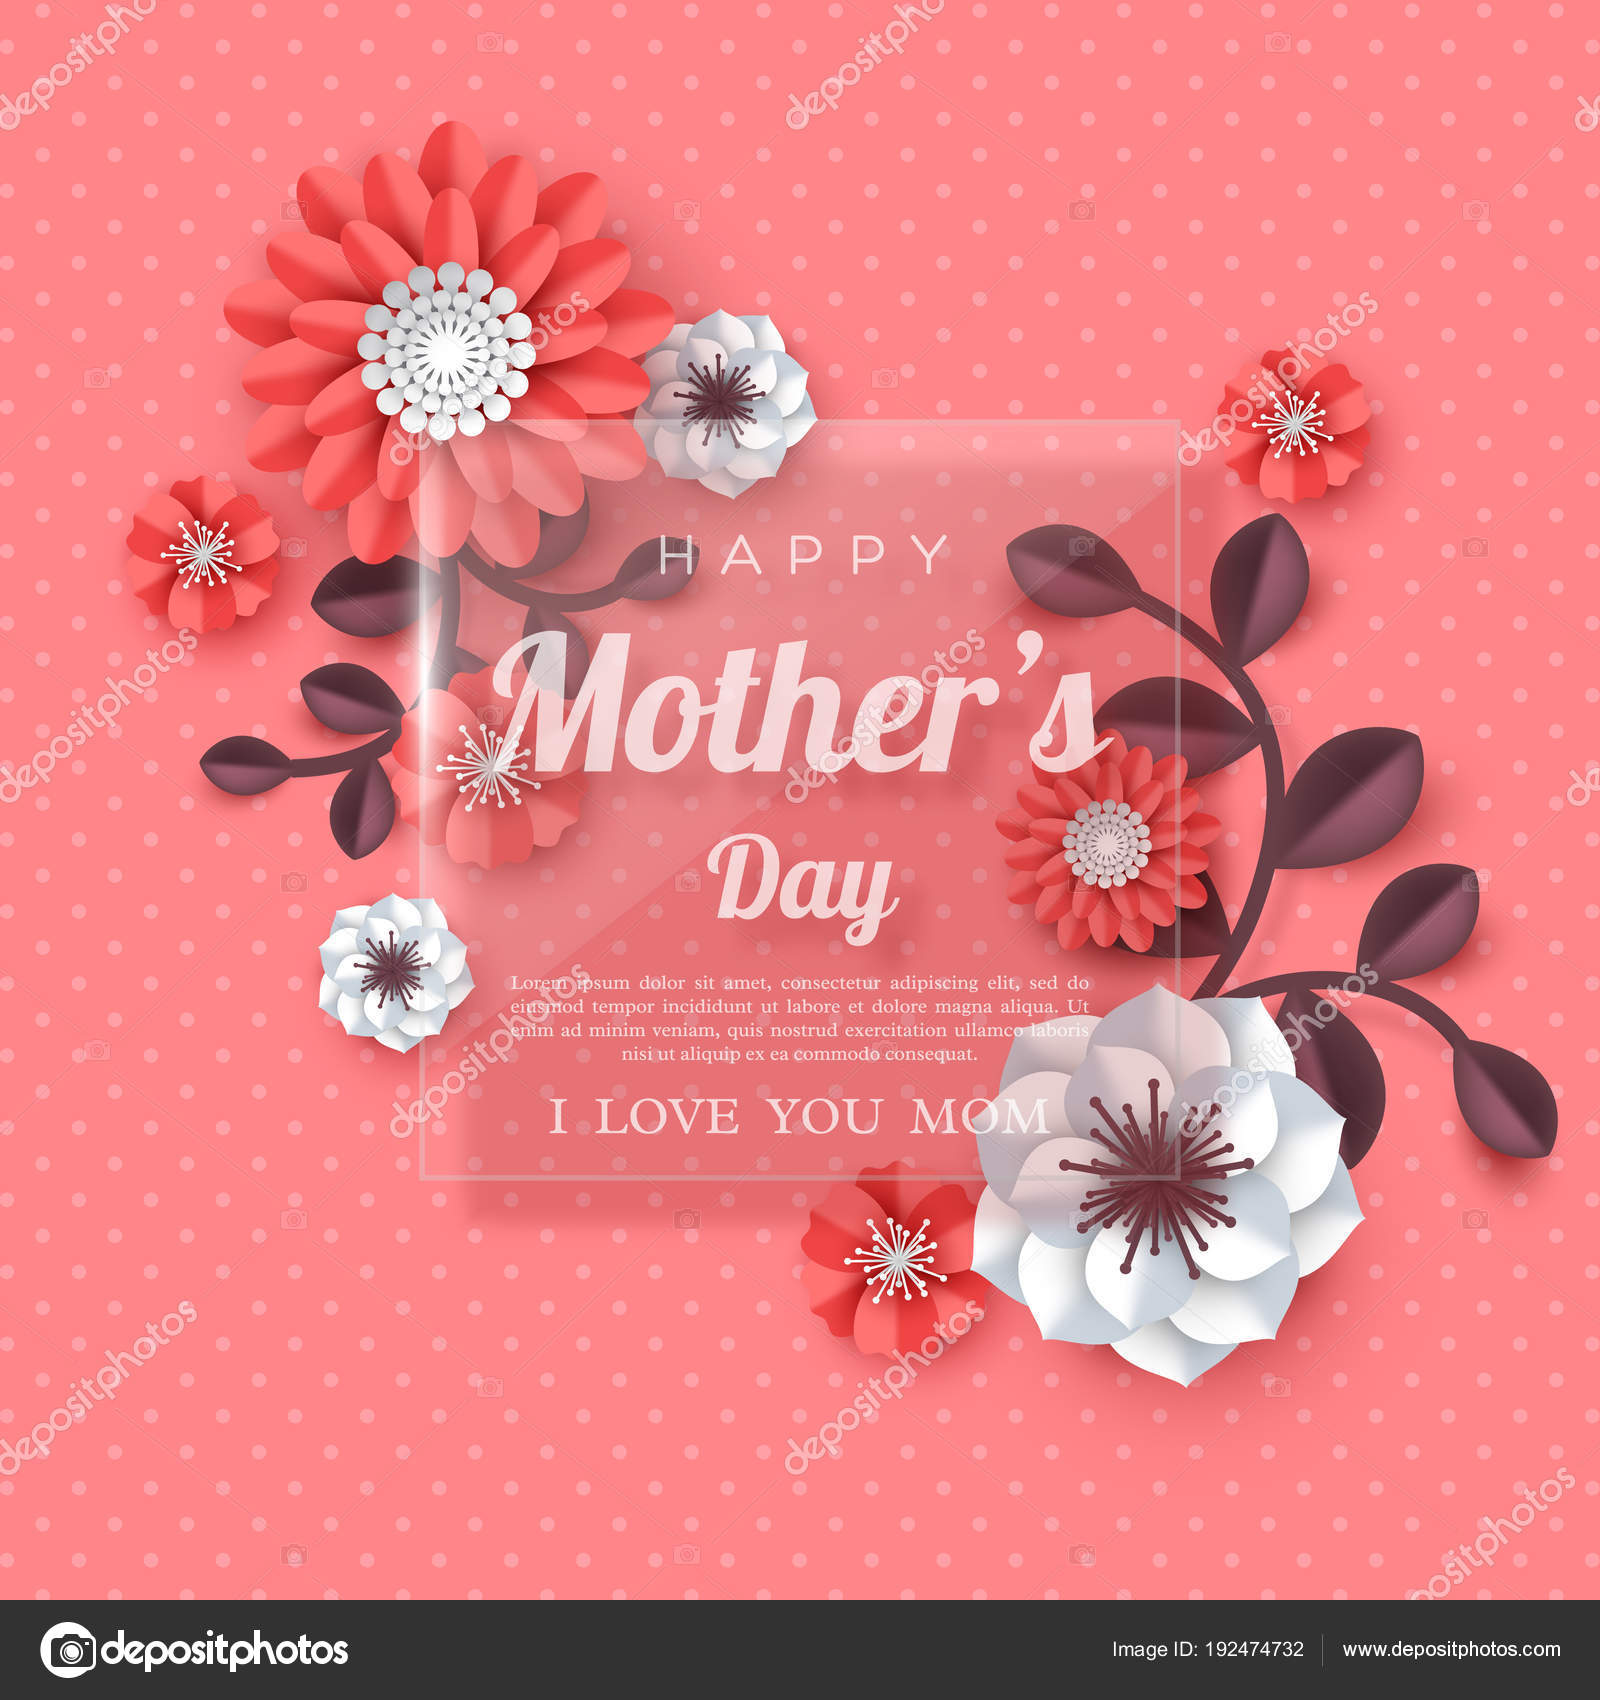 Happy Mothers Day Greeting Card Stock Vector Ludasikm79ail